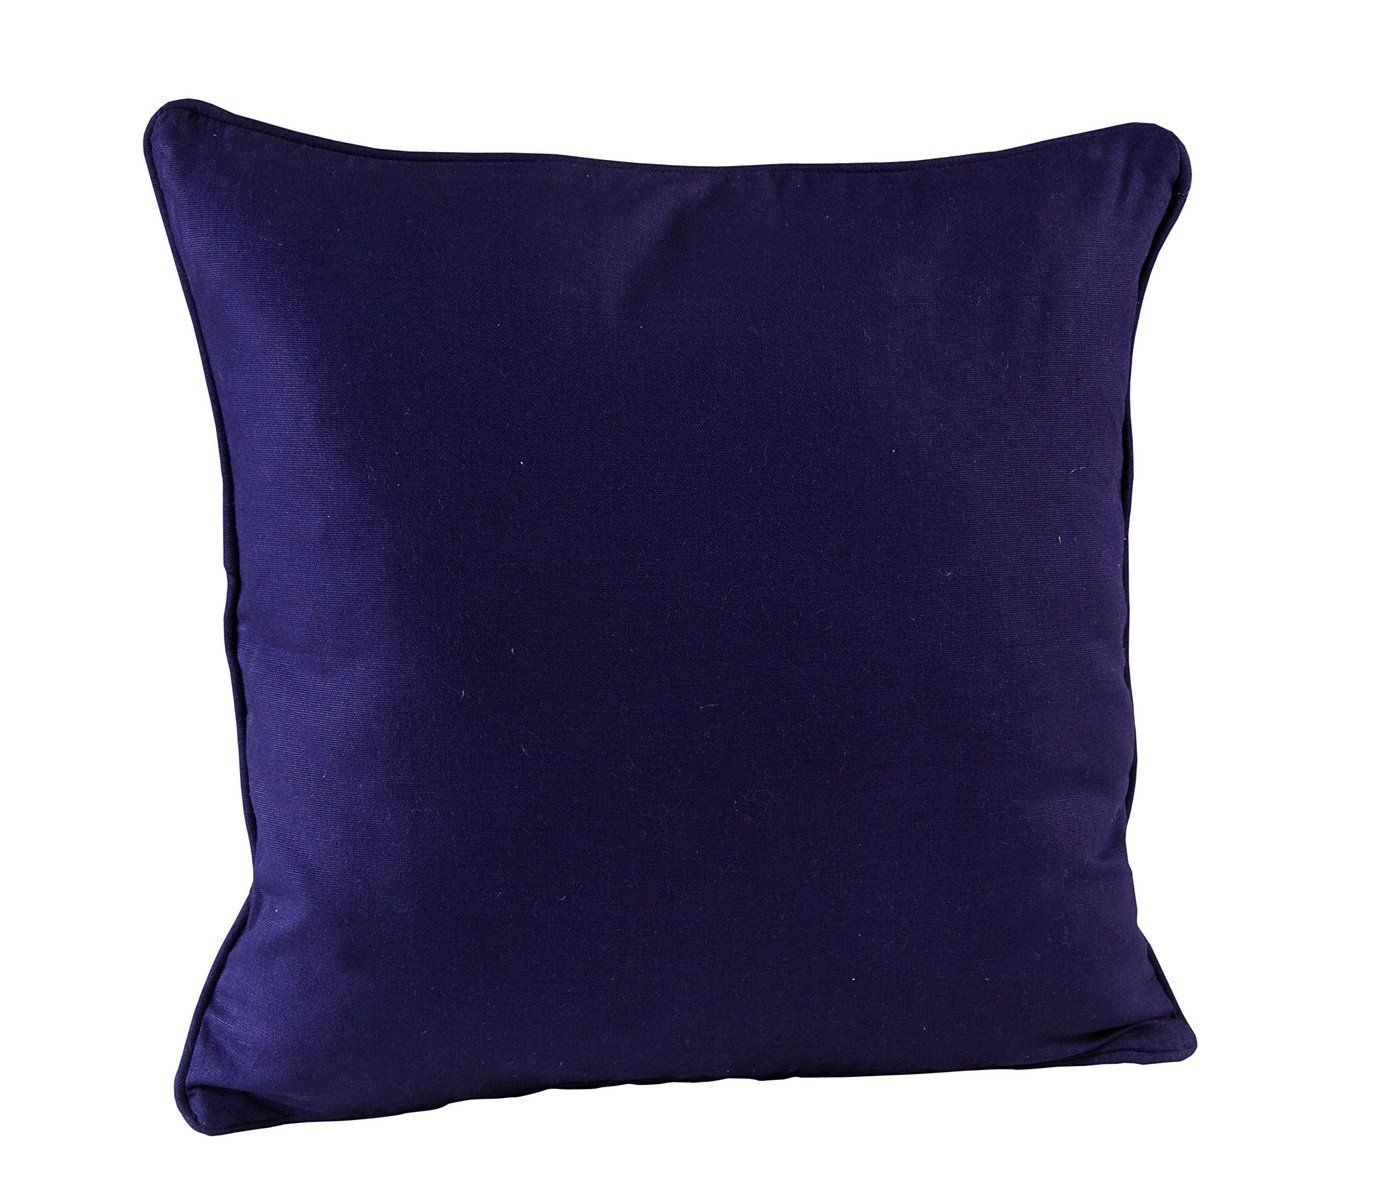 covers big jumbo of queen cases size king case square inch pillow pillowcase large